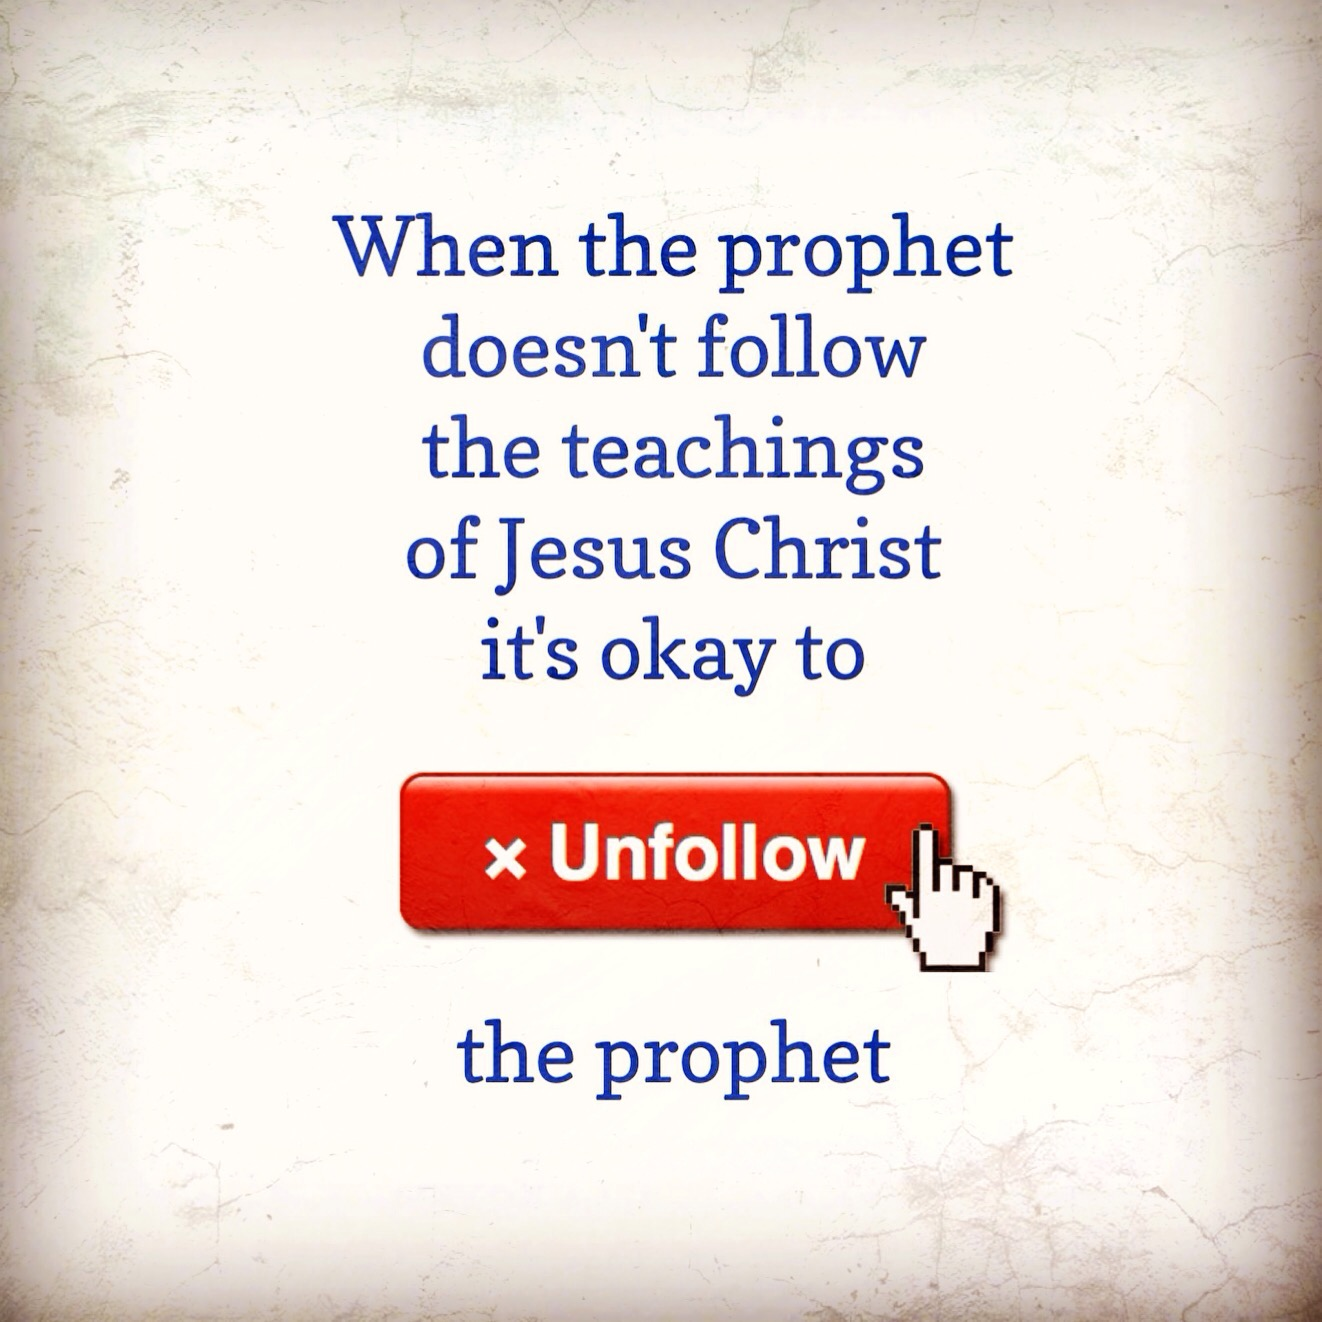 Unfollow the prophet